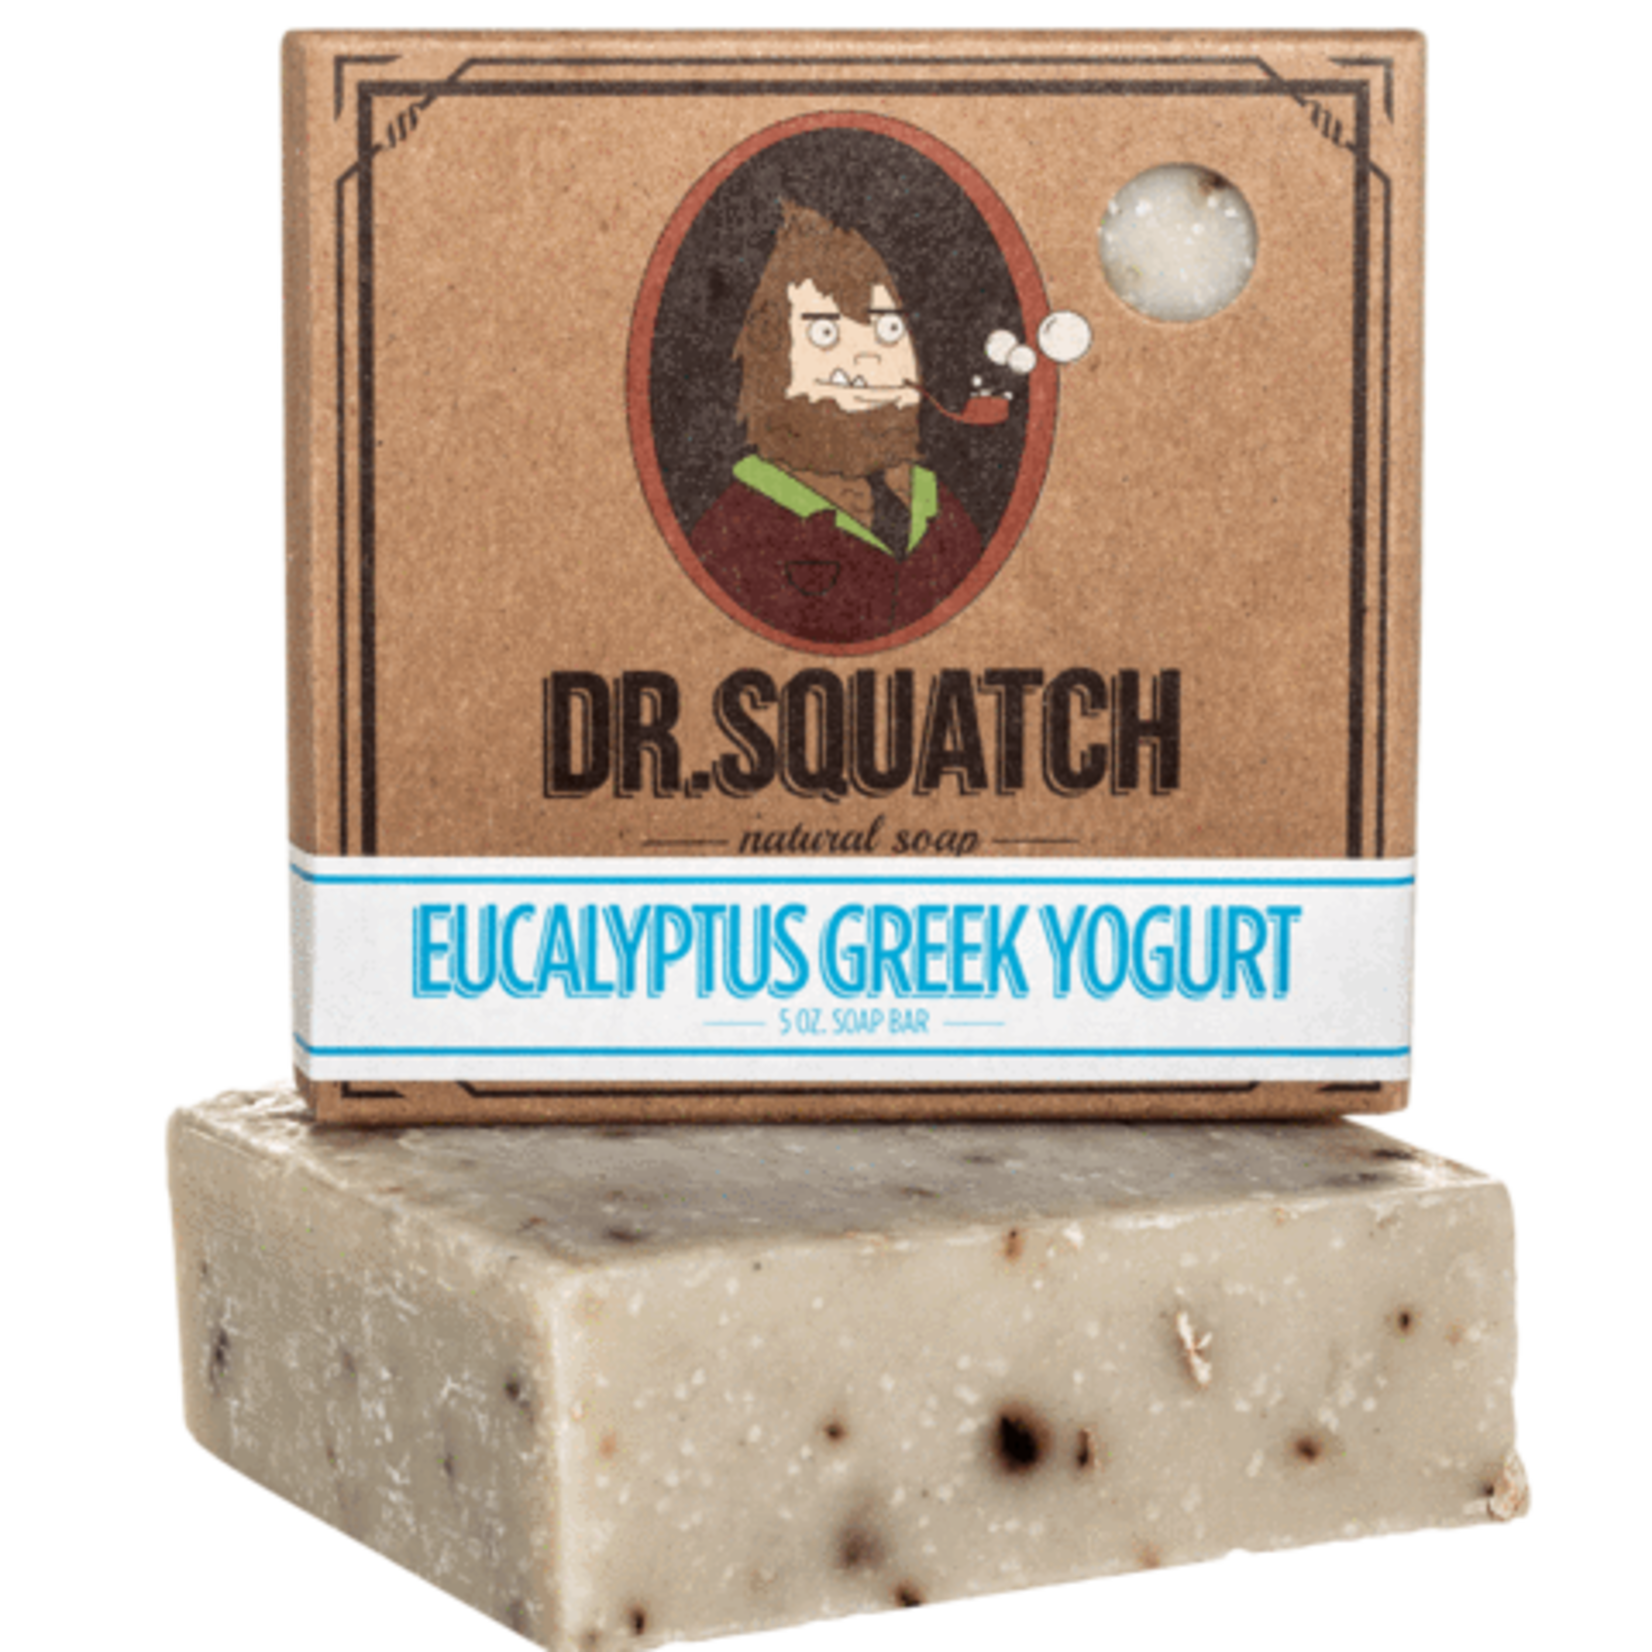 Dr Squatch Bar Soap 5 oz - Eucalyptus Greek Yogurt